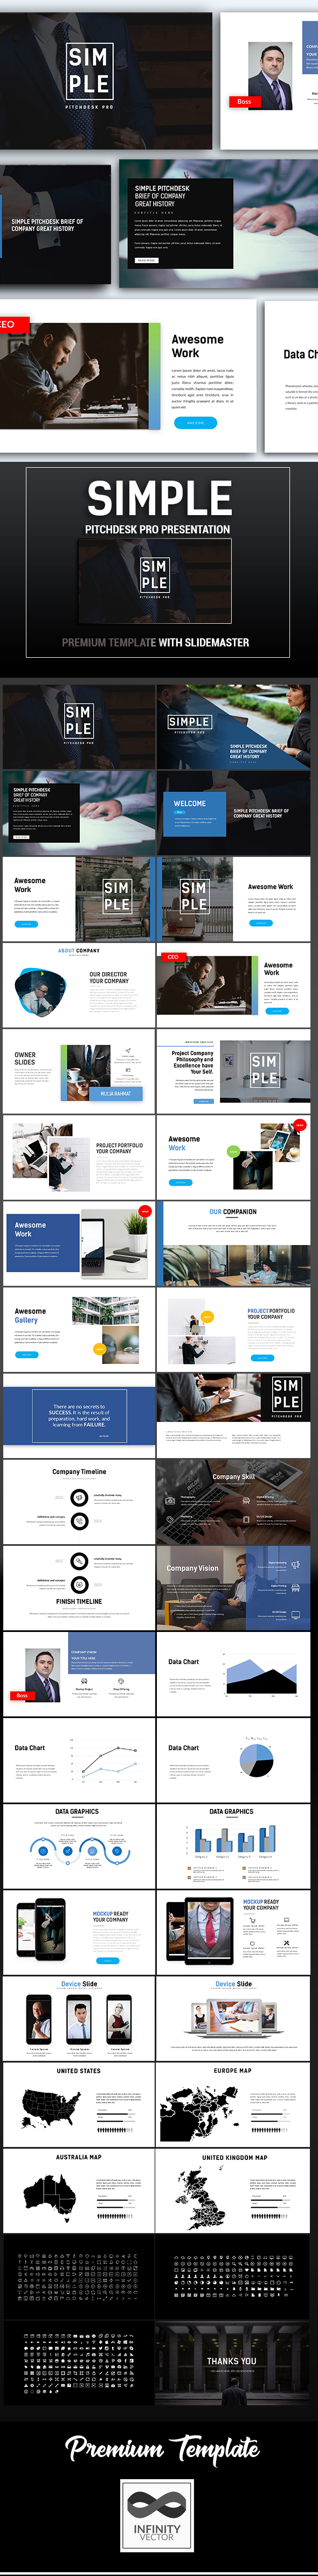 GraphicRiver Simple Pitchdesk Pro Google Slide 20956164